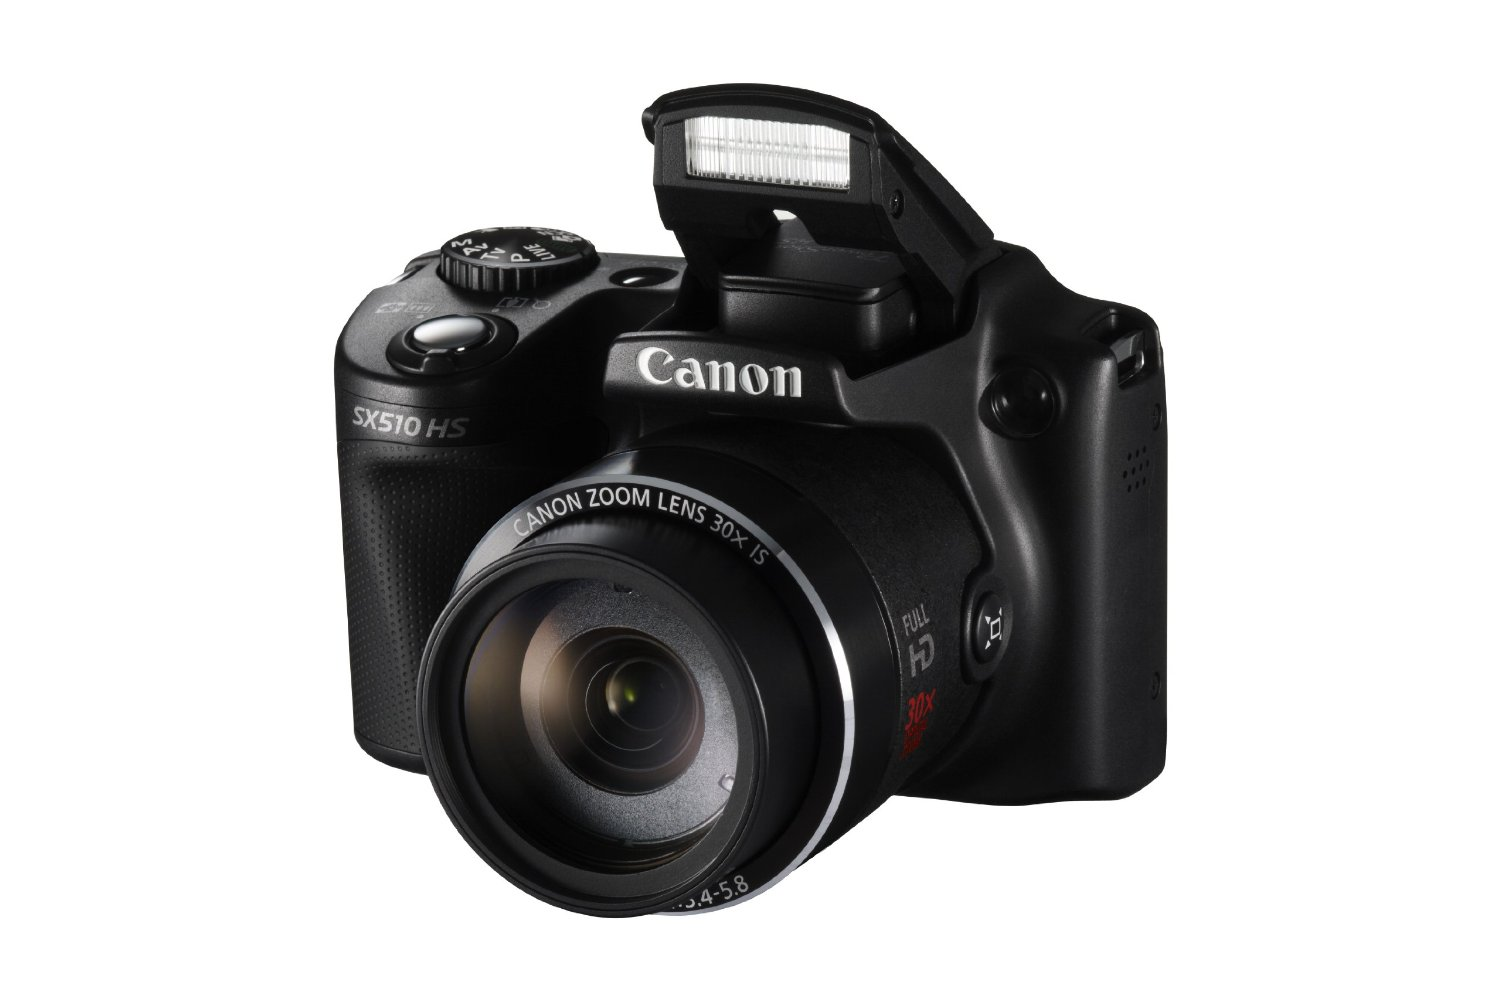 Canon Powershot Sx170 Is Sx510 Hs Announced Price Where